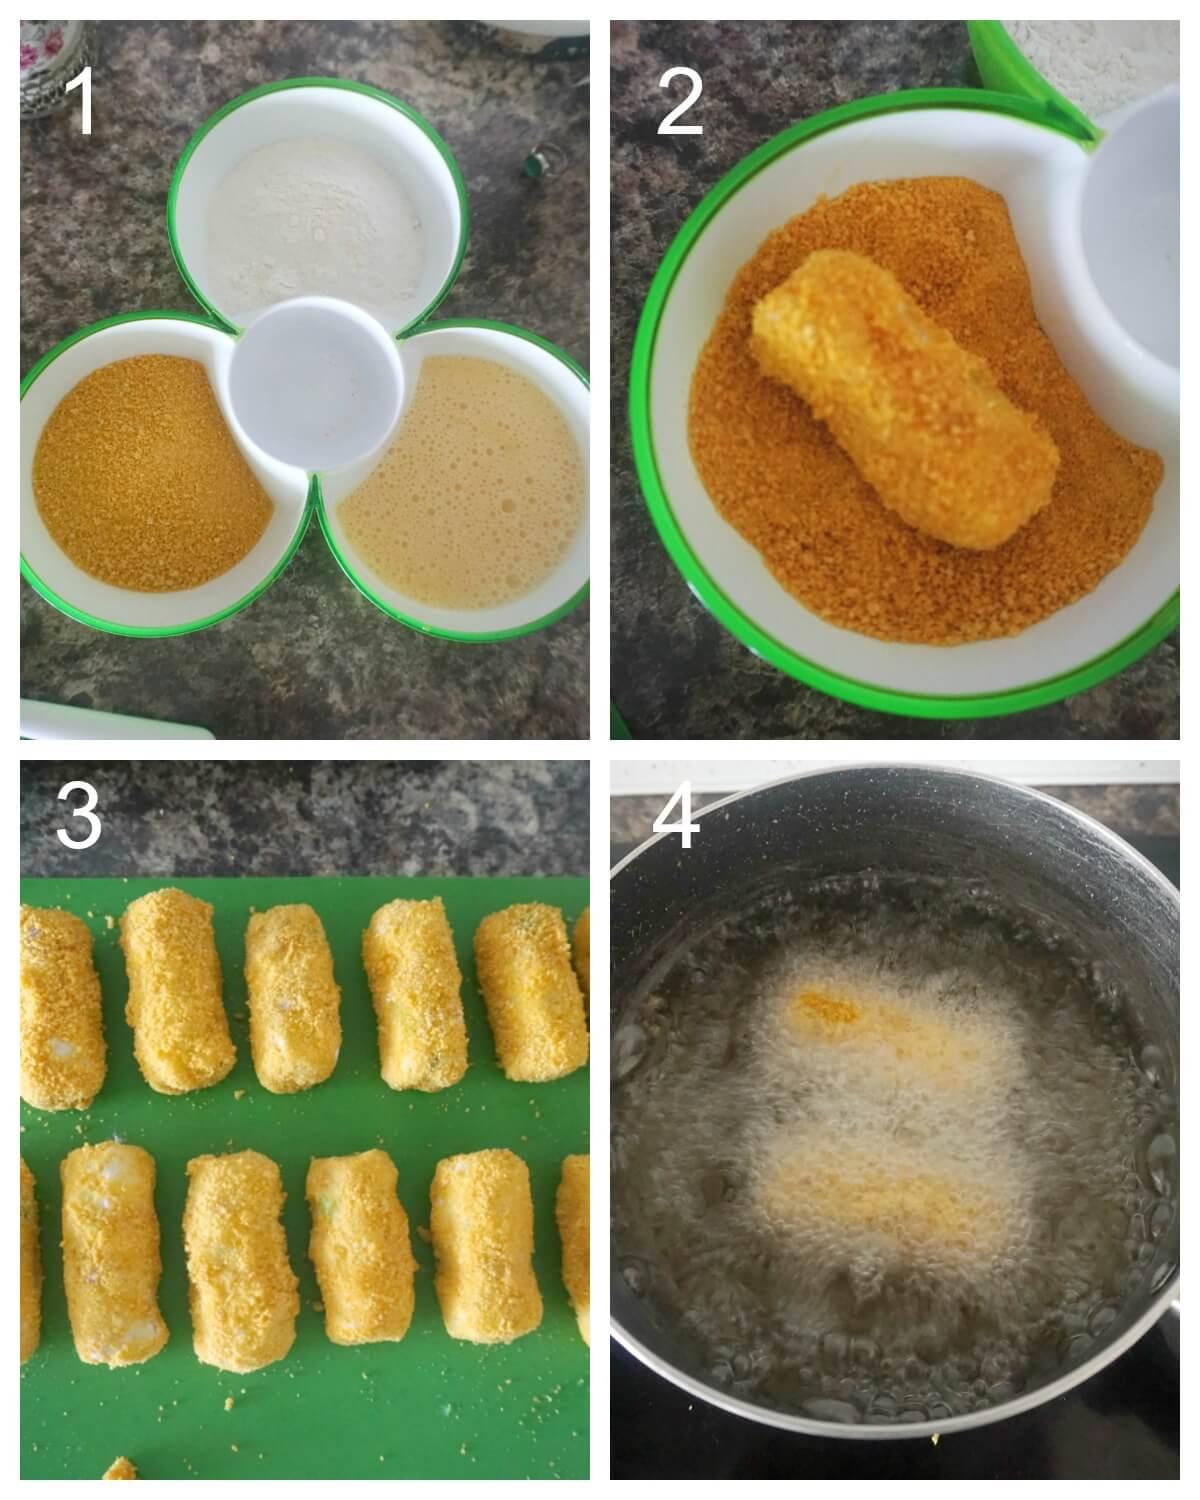 Collage of 4 photos to show how to fry the croquetes